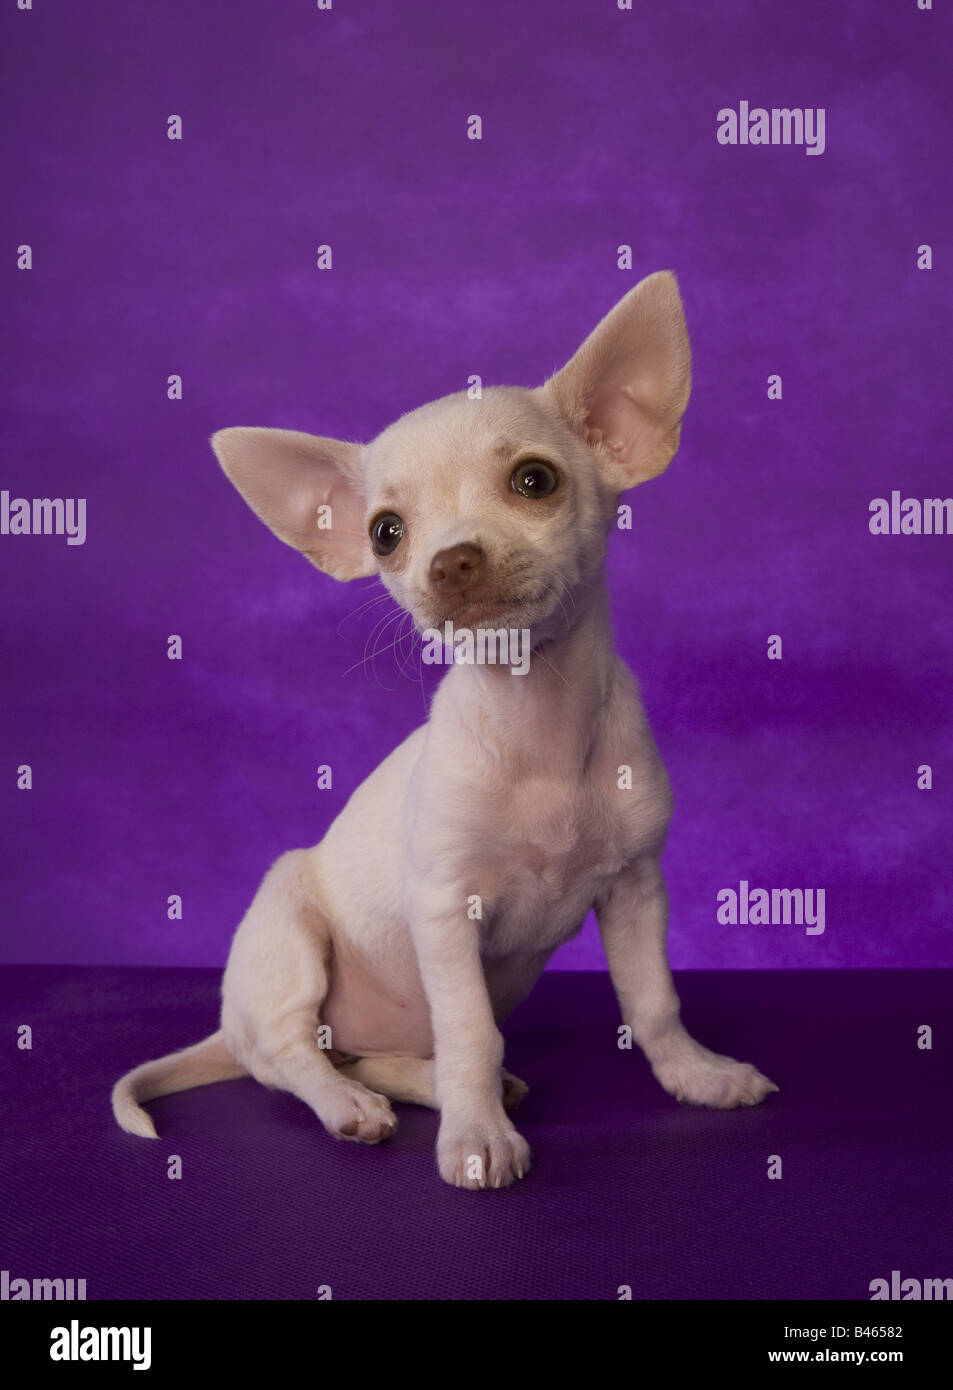 Cute cream color shorthaired Chihuahua puppy sitting on purple background - Stock Image